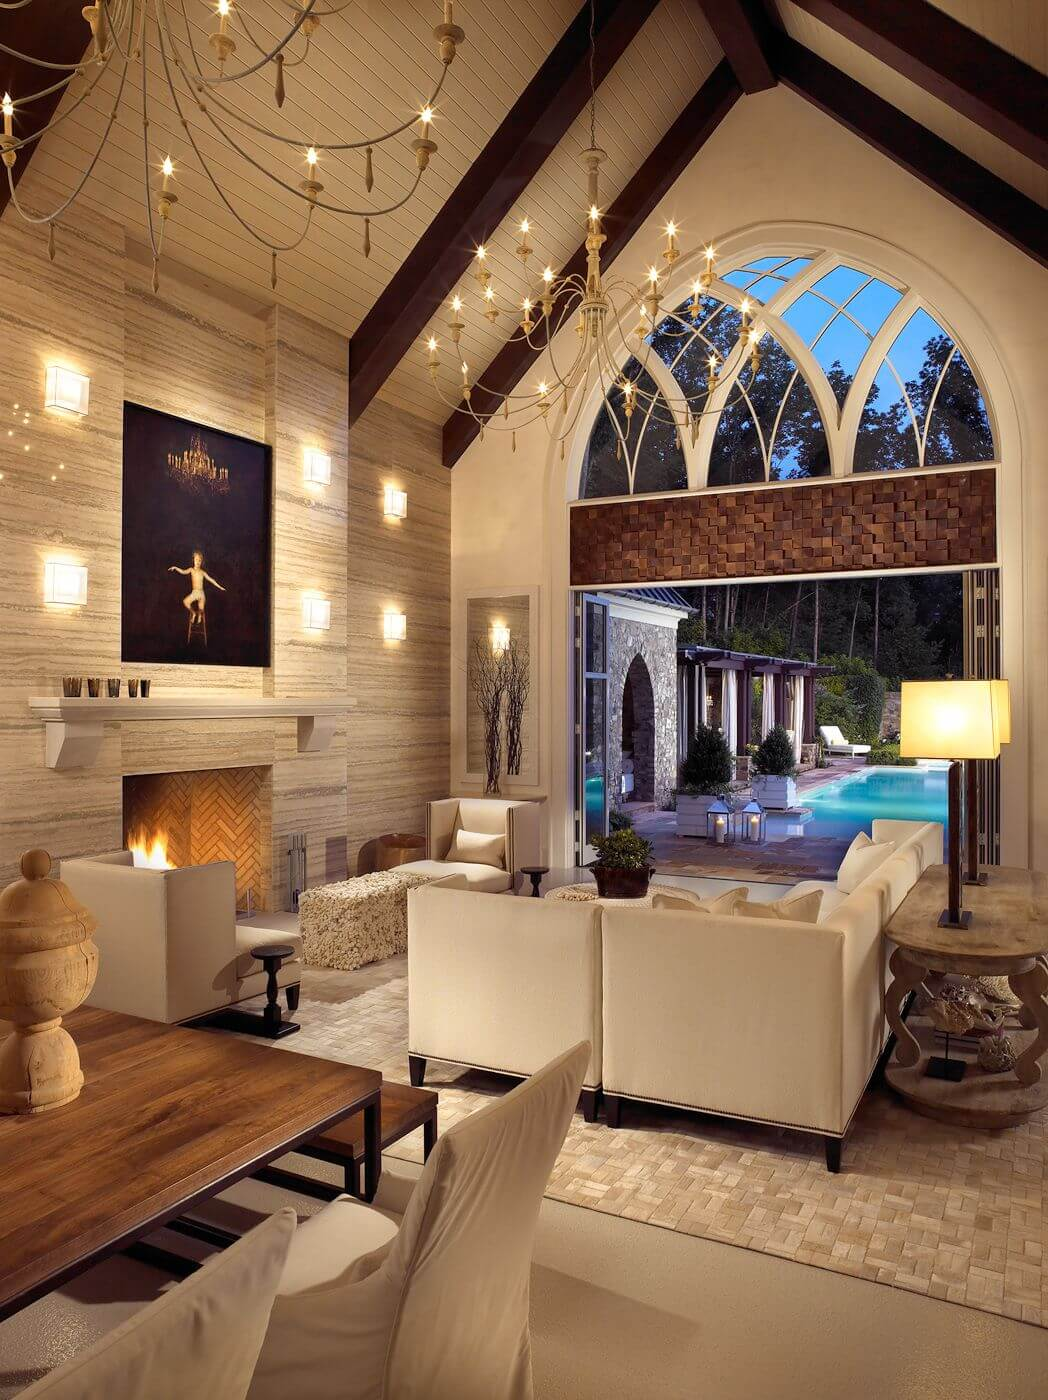 This luxurious room features an L-shaped living room sectional in beige, near large sliding patio opening. Rich stone textures and high vaulted ceiling with exposed beams complete the look.